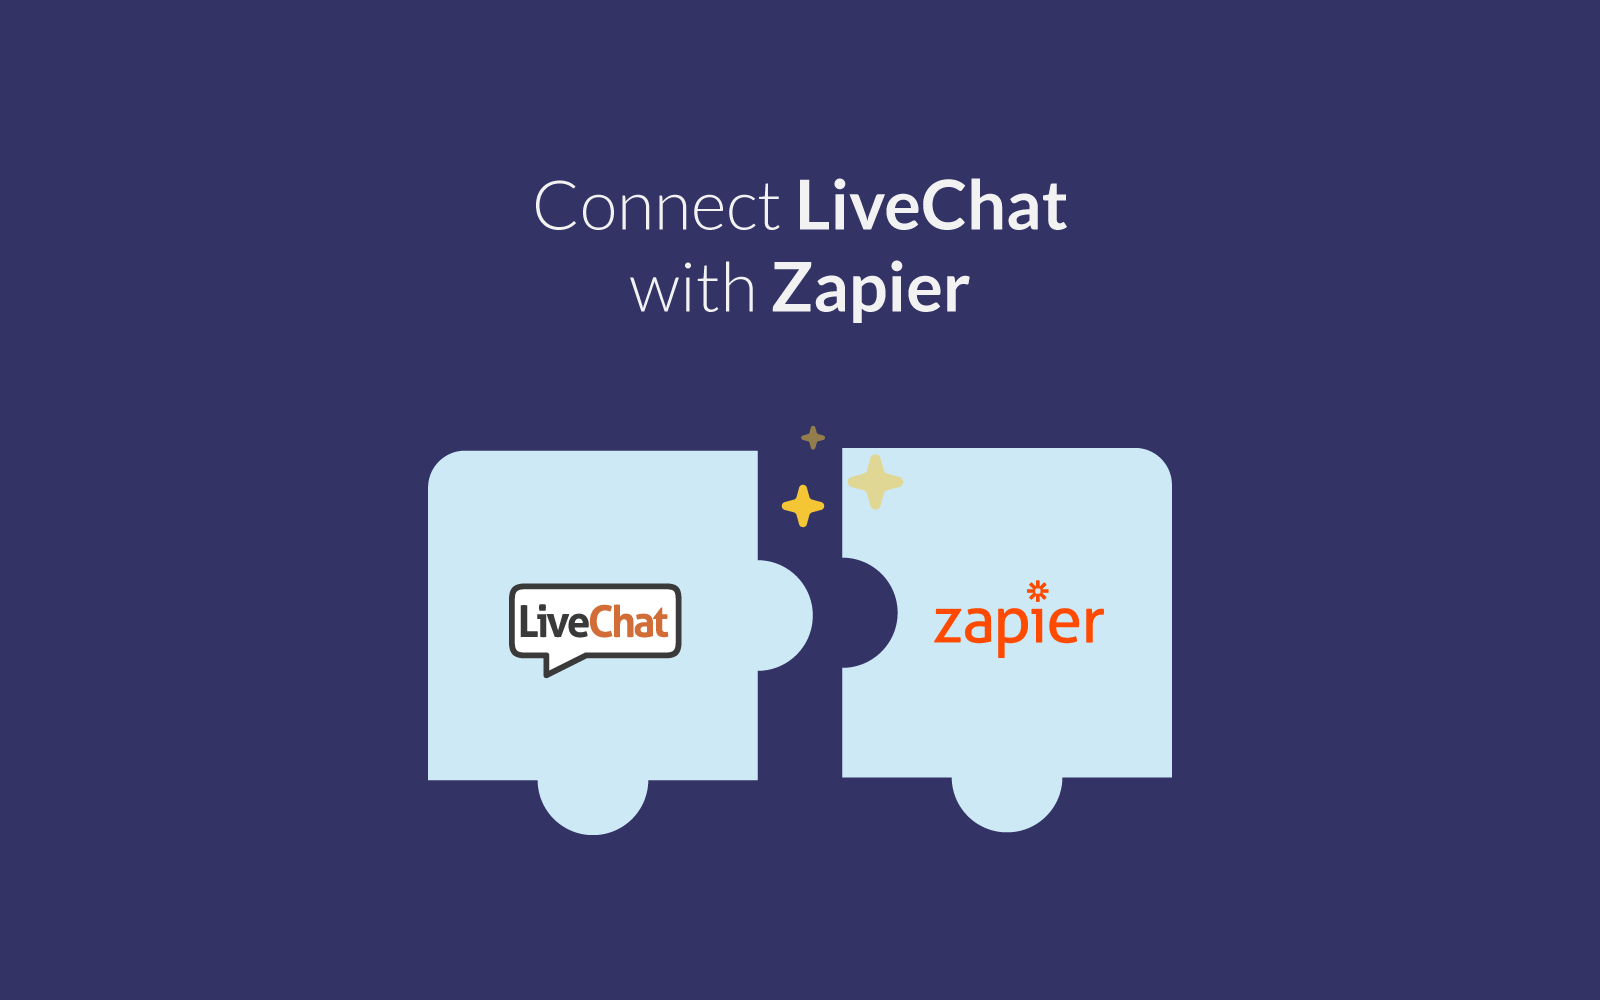 LiveChat integrates with Zapier